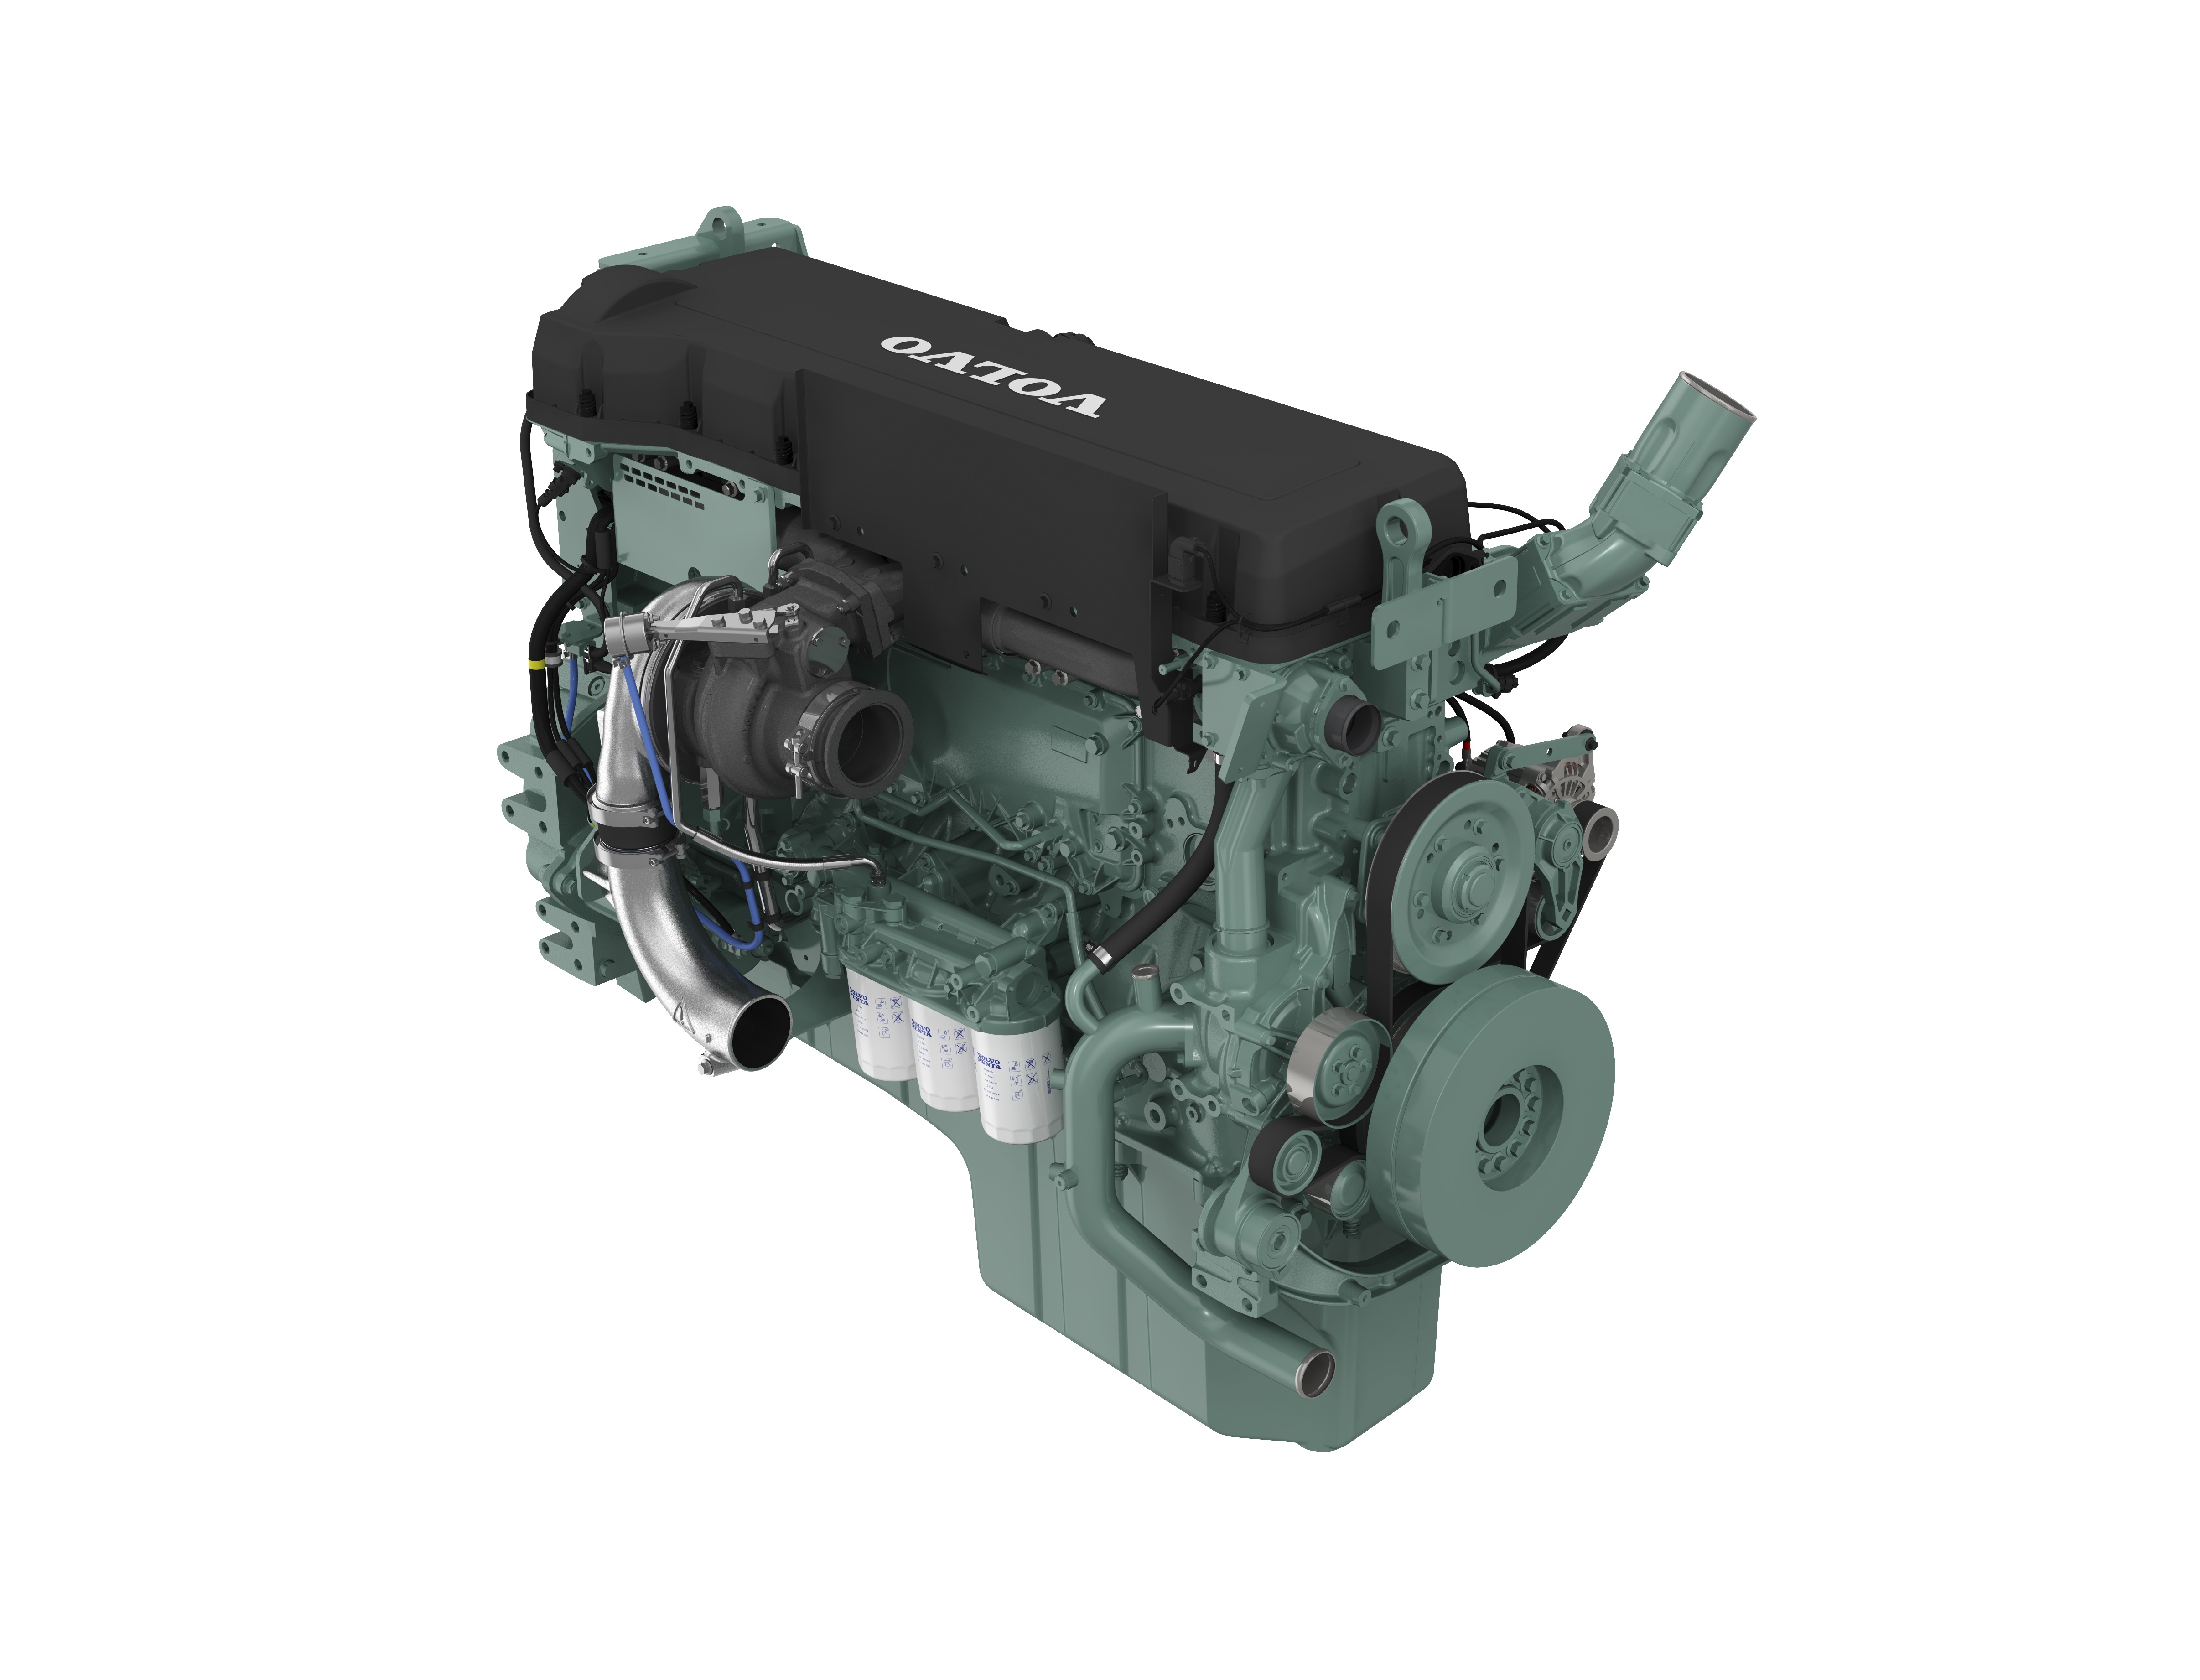 Volvo Penta collaborates with Sandvik on engine for its latest